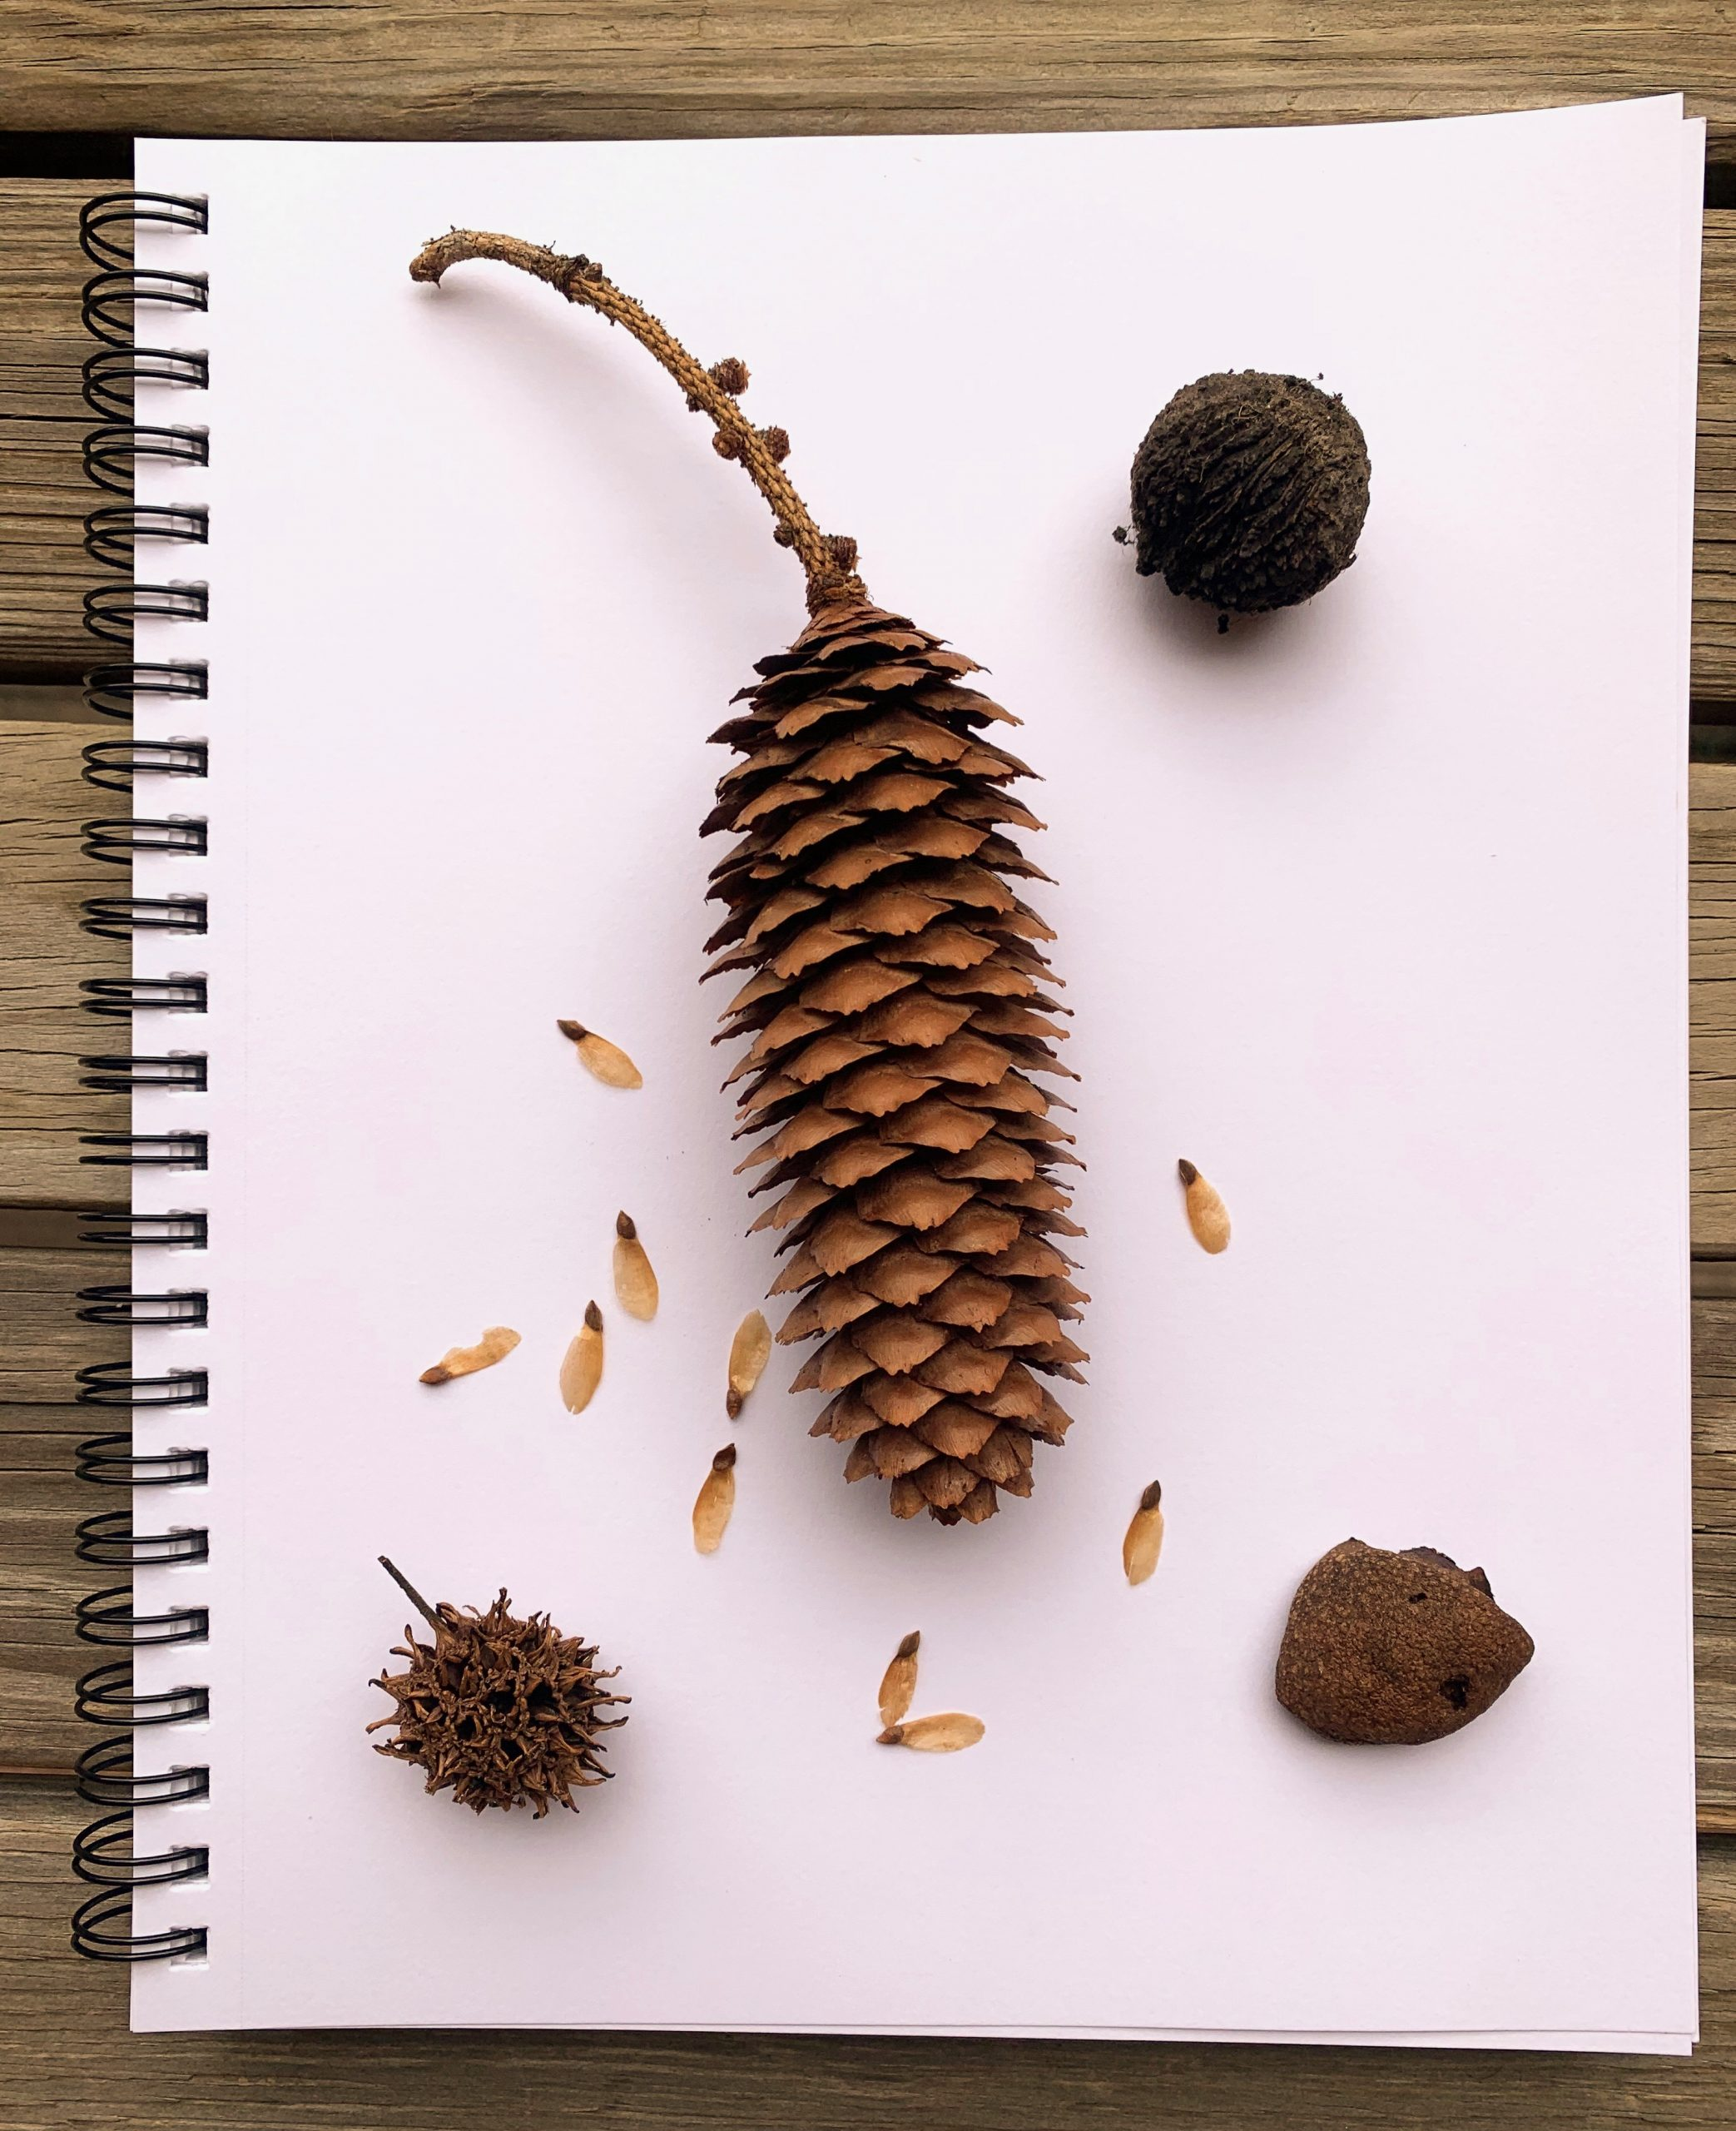 Tree pods lying on a blank notebook page